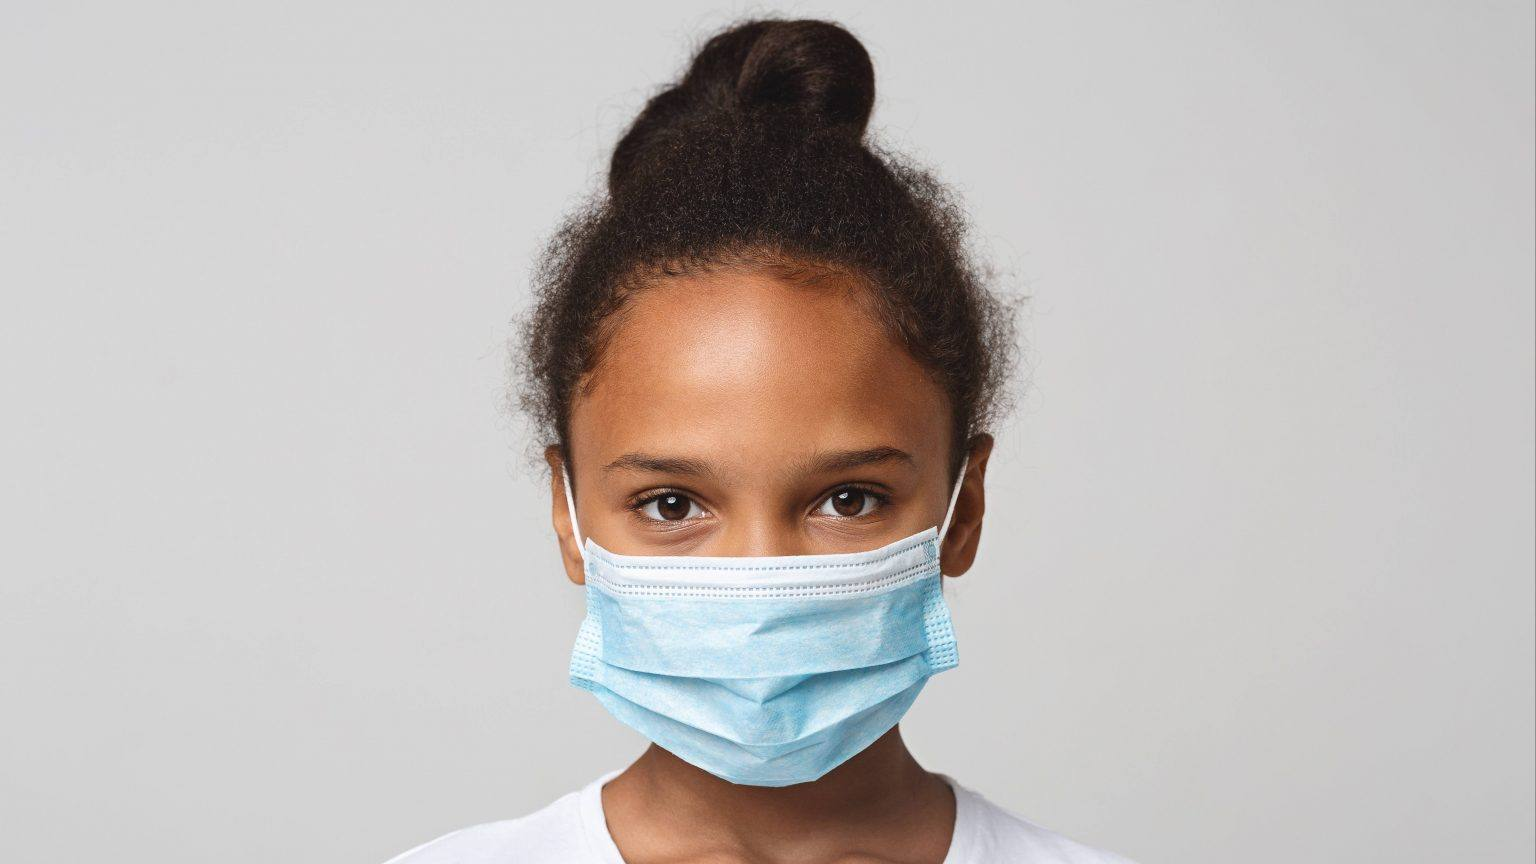 a-little-Black-school-aged-girl-with-a-plain-white-background-and-wearing-a-face-mask-16x9-1-1536x864